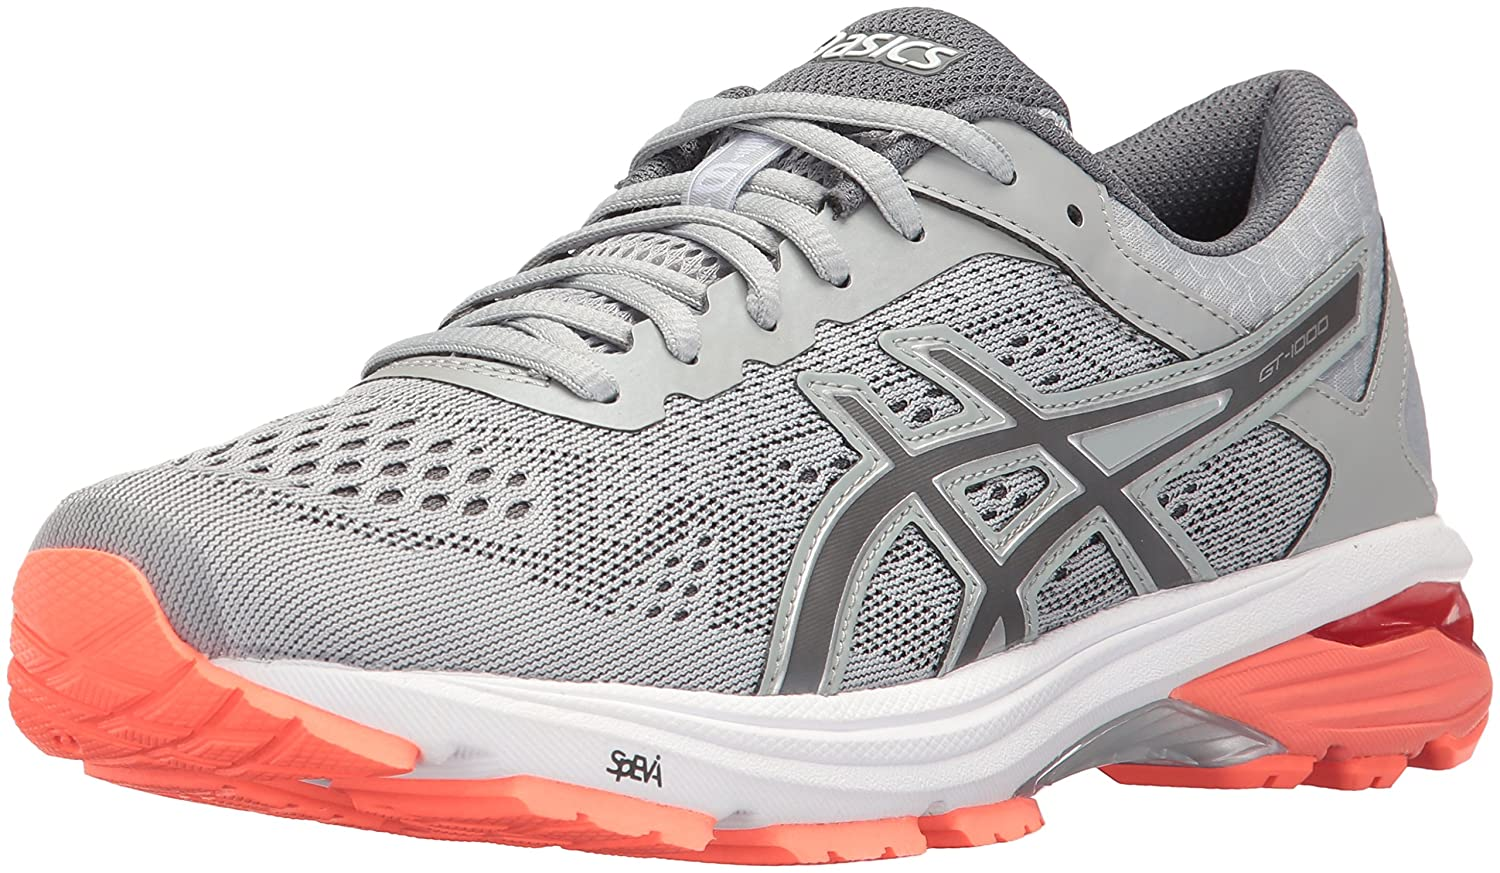 ASICS Women's GT-1000 6 Running Shoe B01N06LH1S 9 B(M) US|Mid Grey/Carbon/Flash Coral